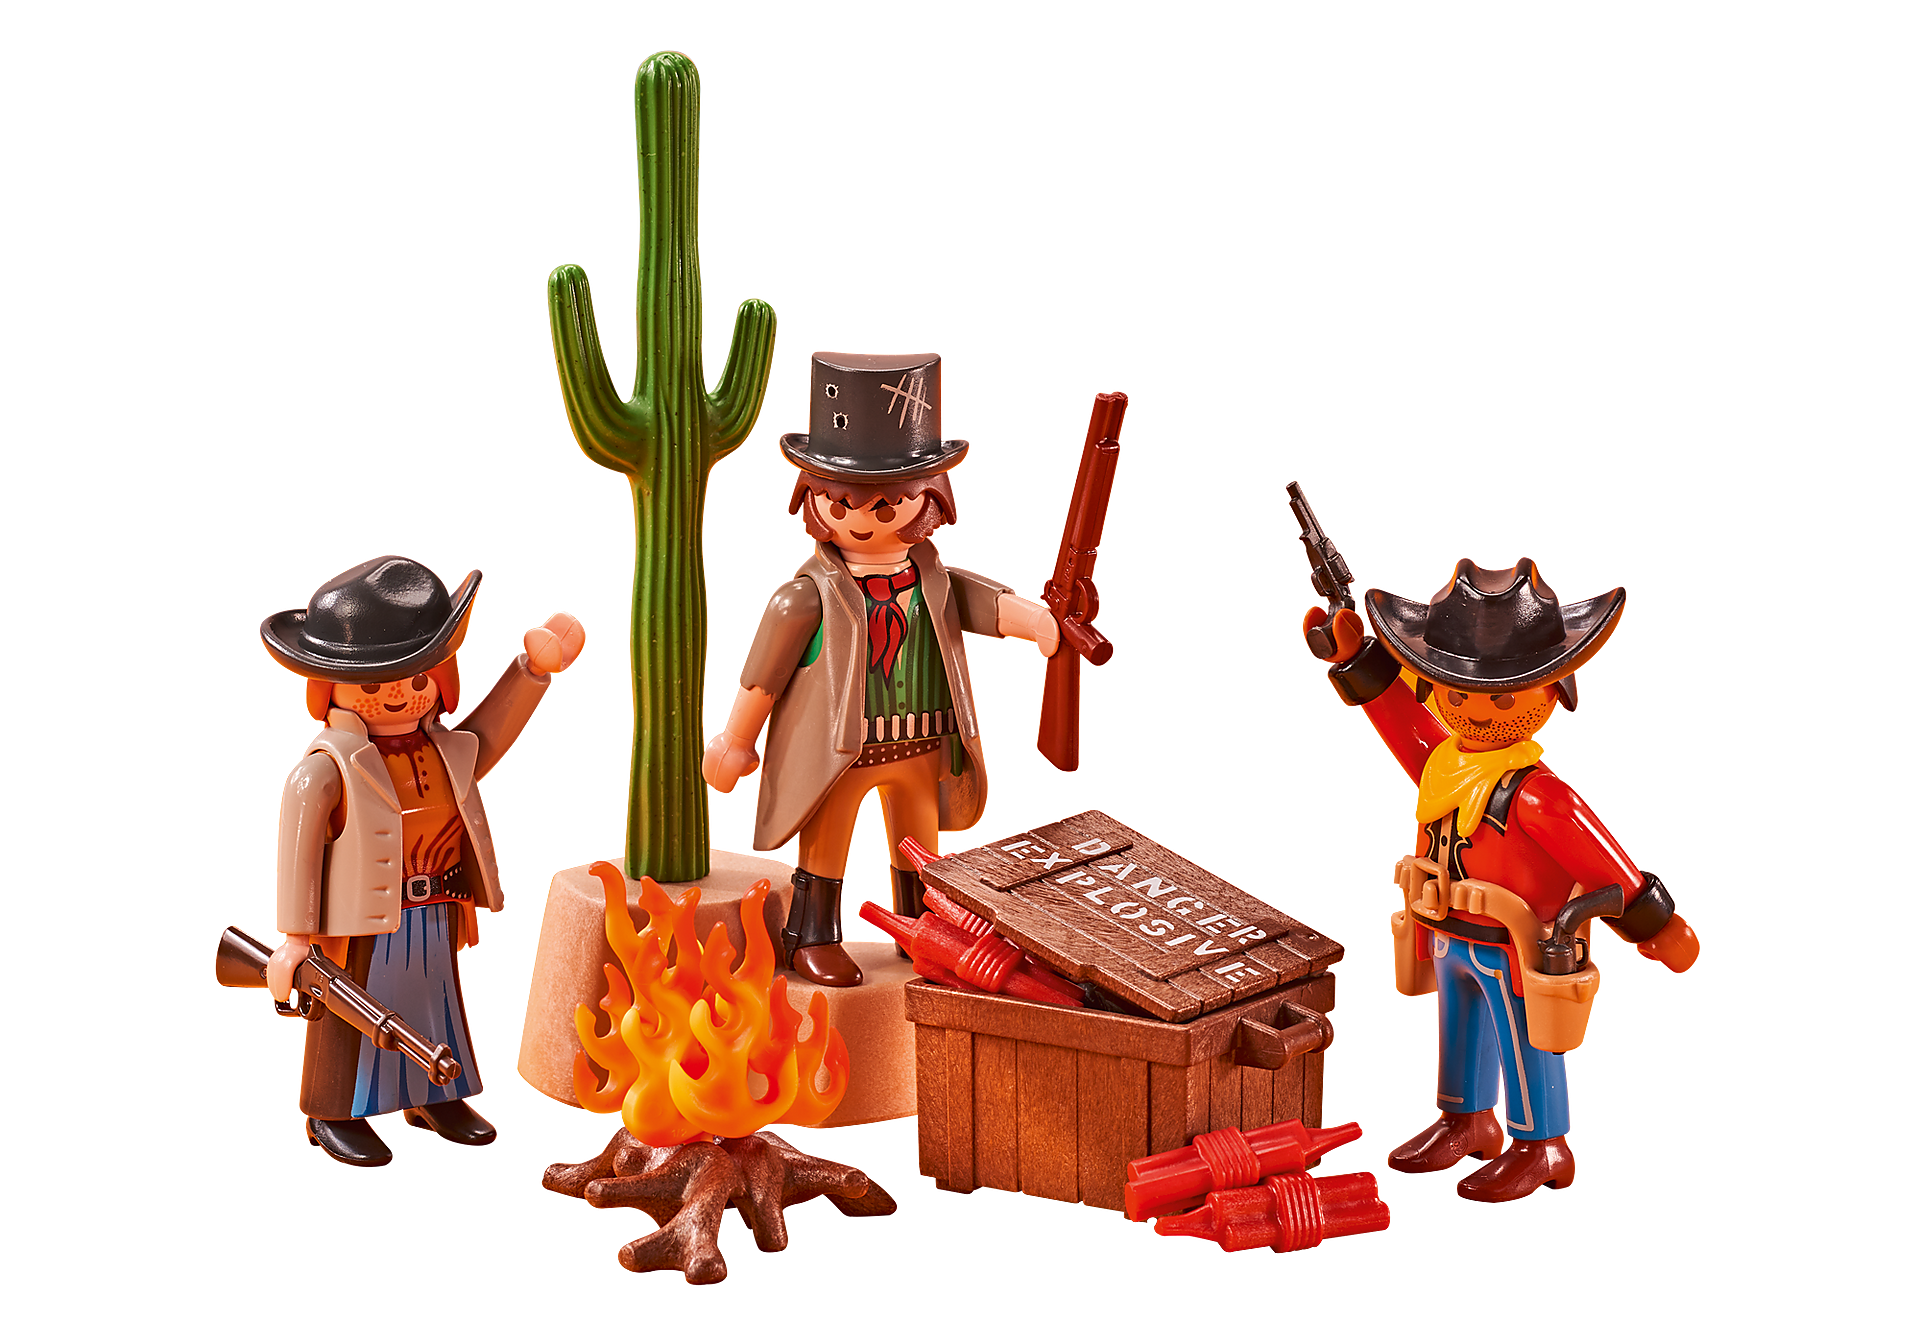 6546 Bandits du Far West zoom image1